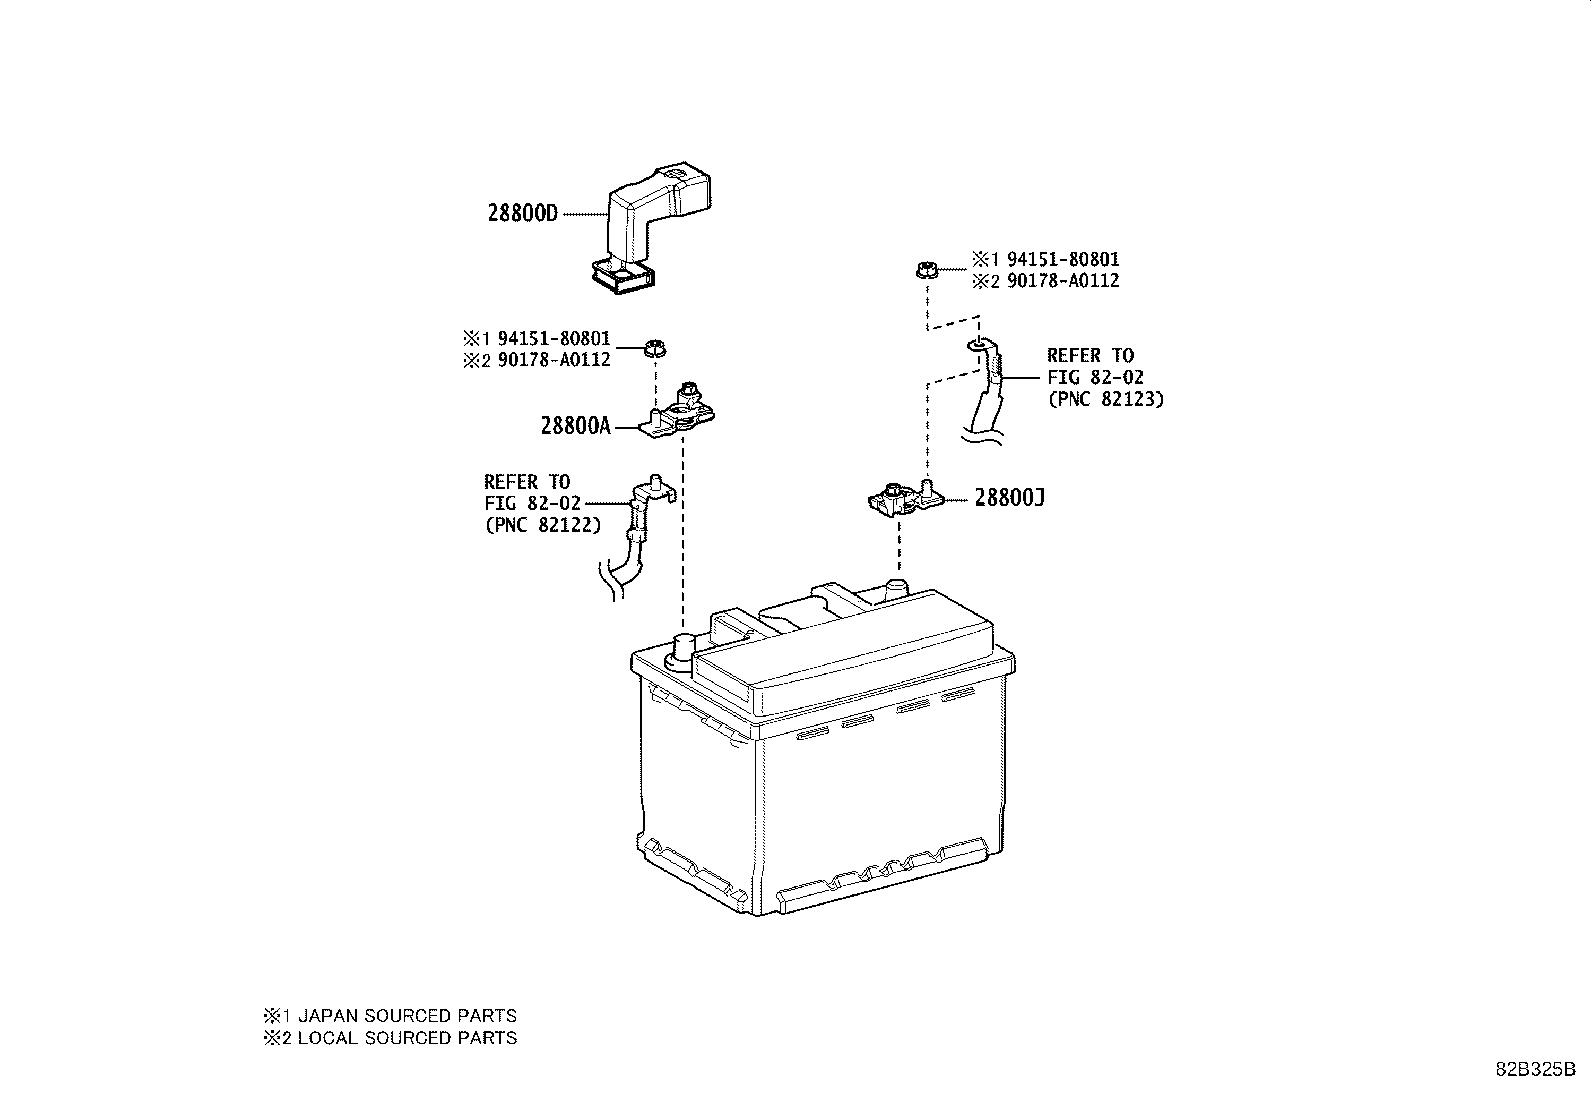 toyota camry headlight wiring diagram toyota camry battery wiring toyota camry computer assembly, battery. electrical ...